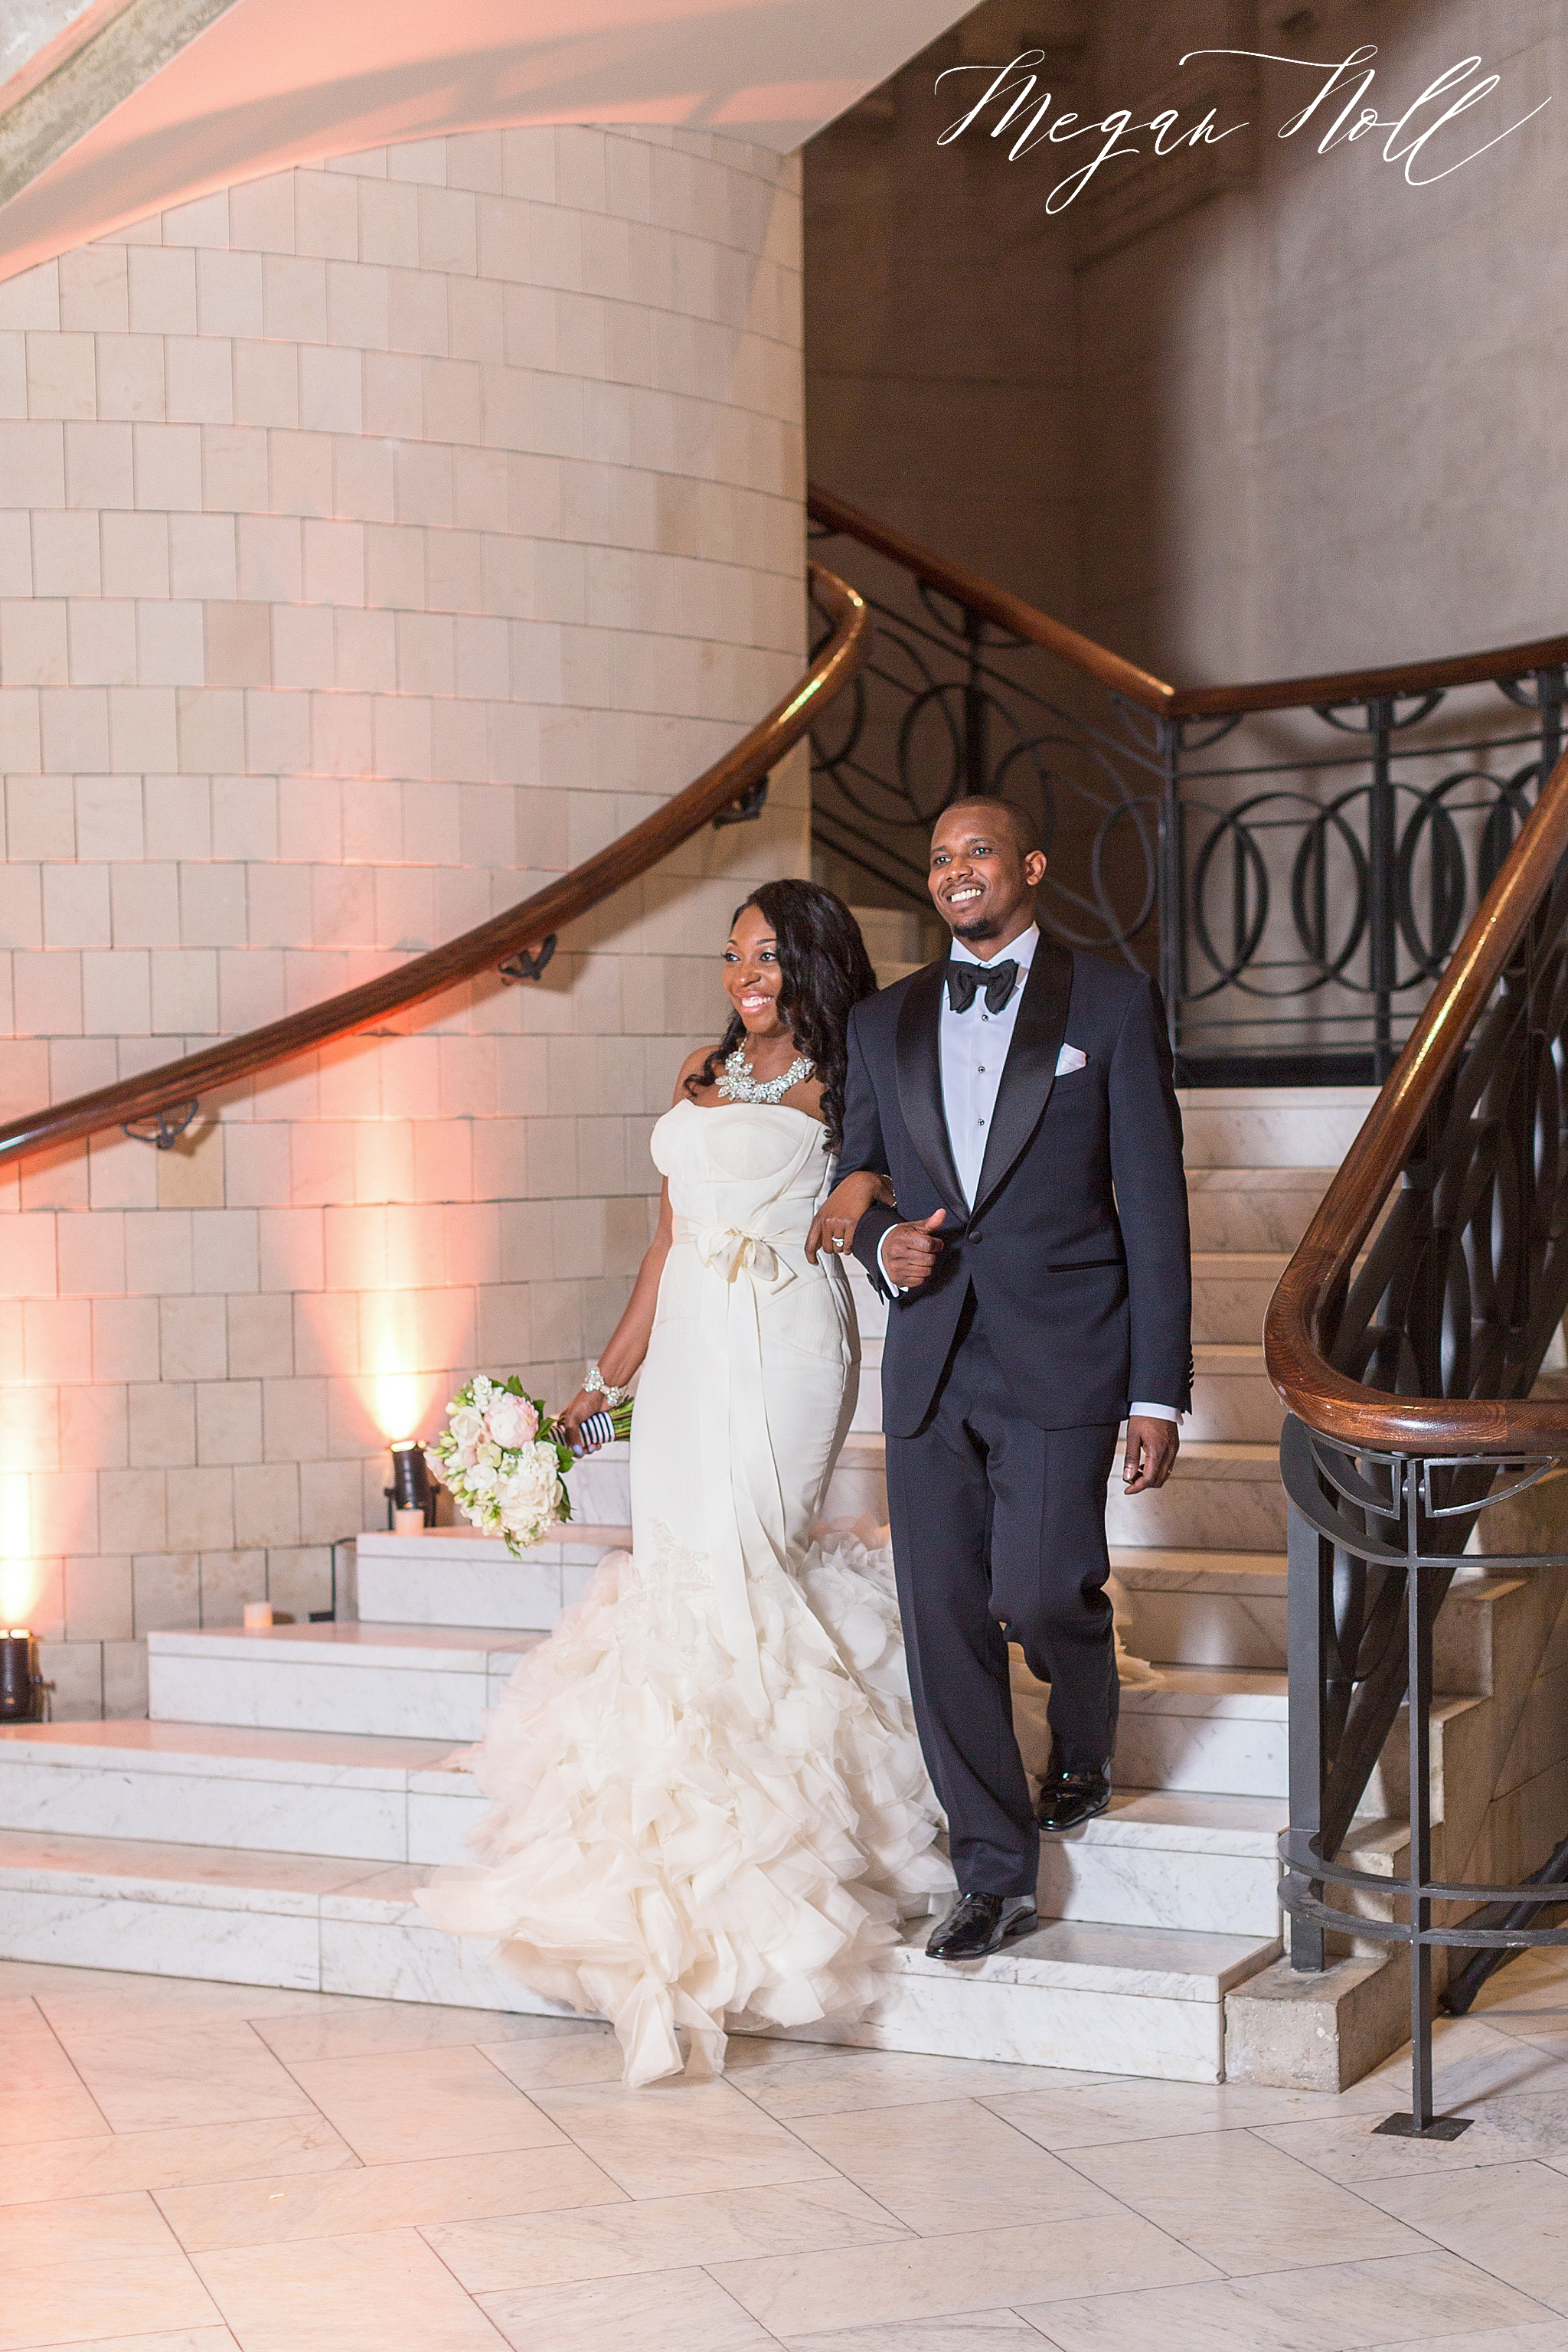 Cincinnati Art Museum is a top wedding venue in Cincinnati